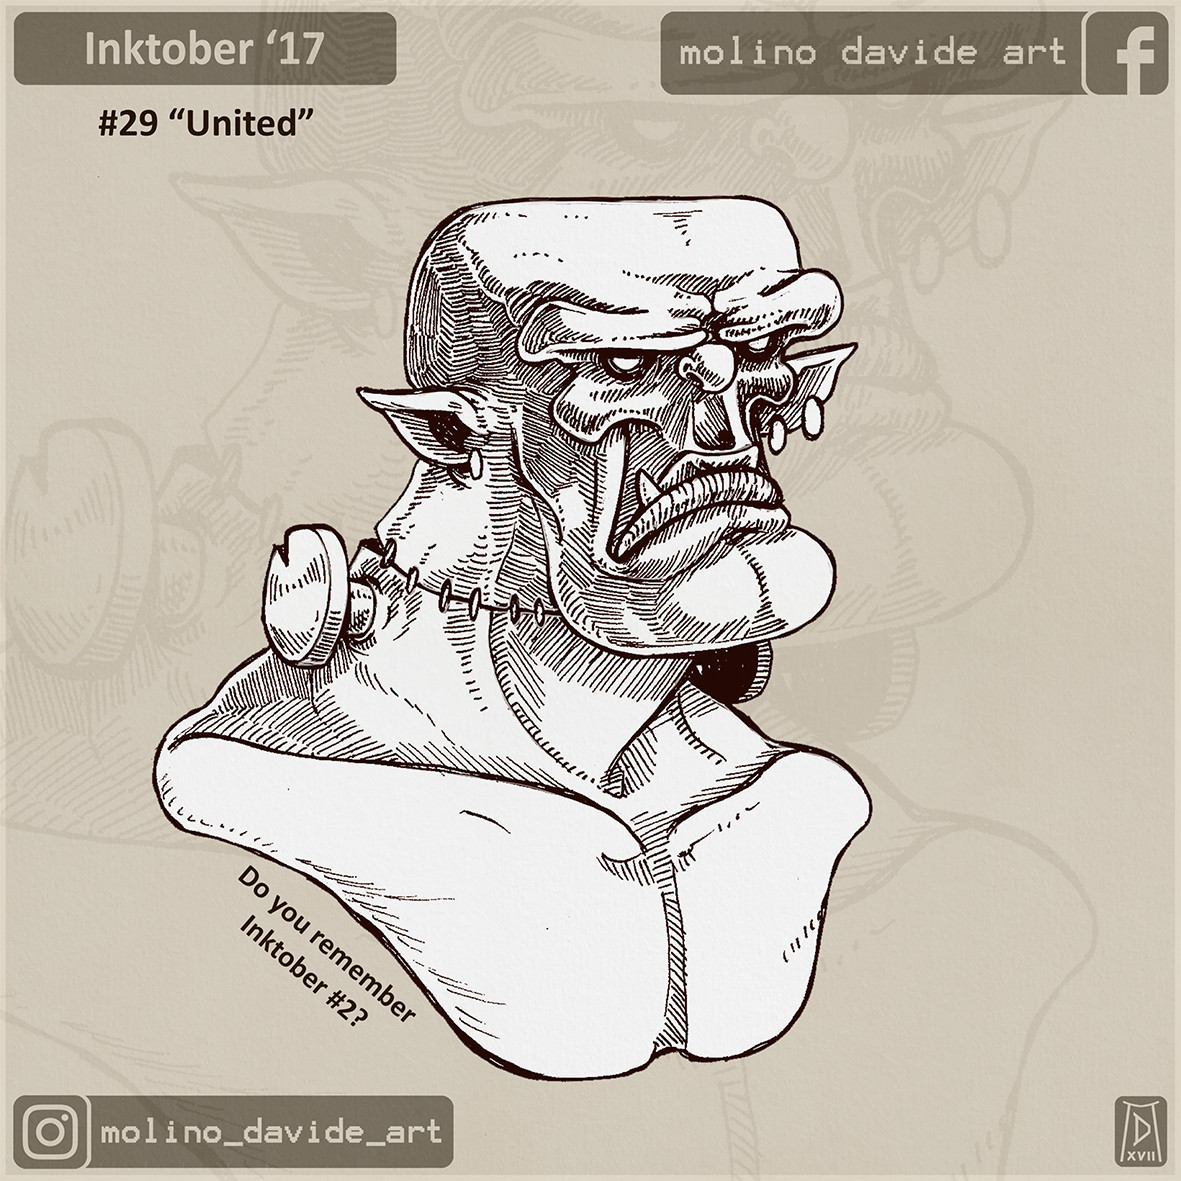 Do you remember the second inktober, right?